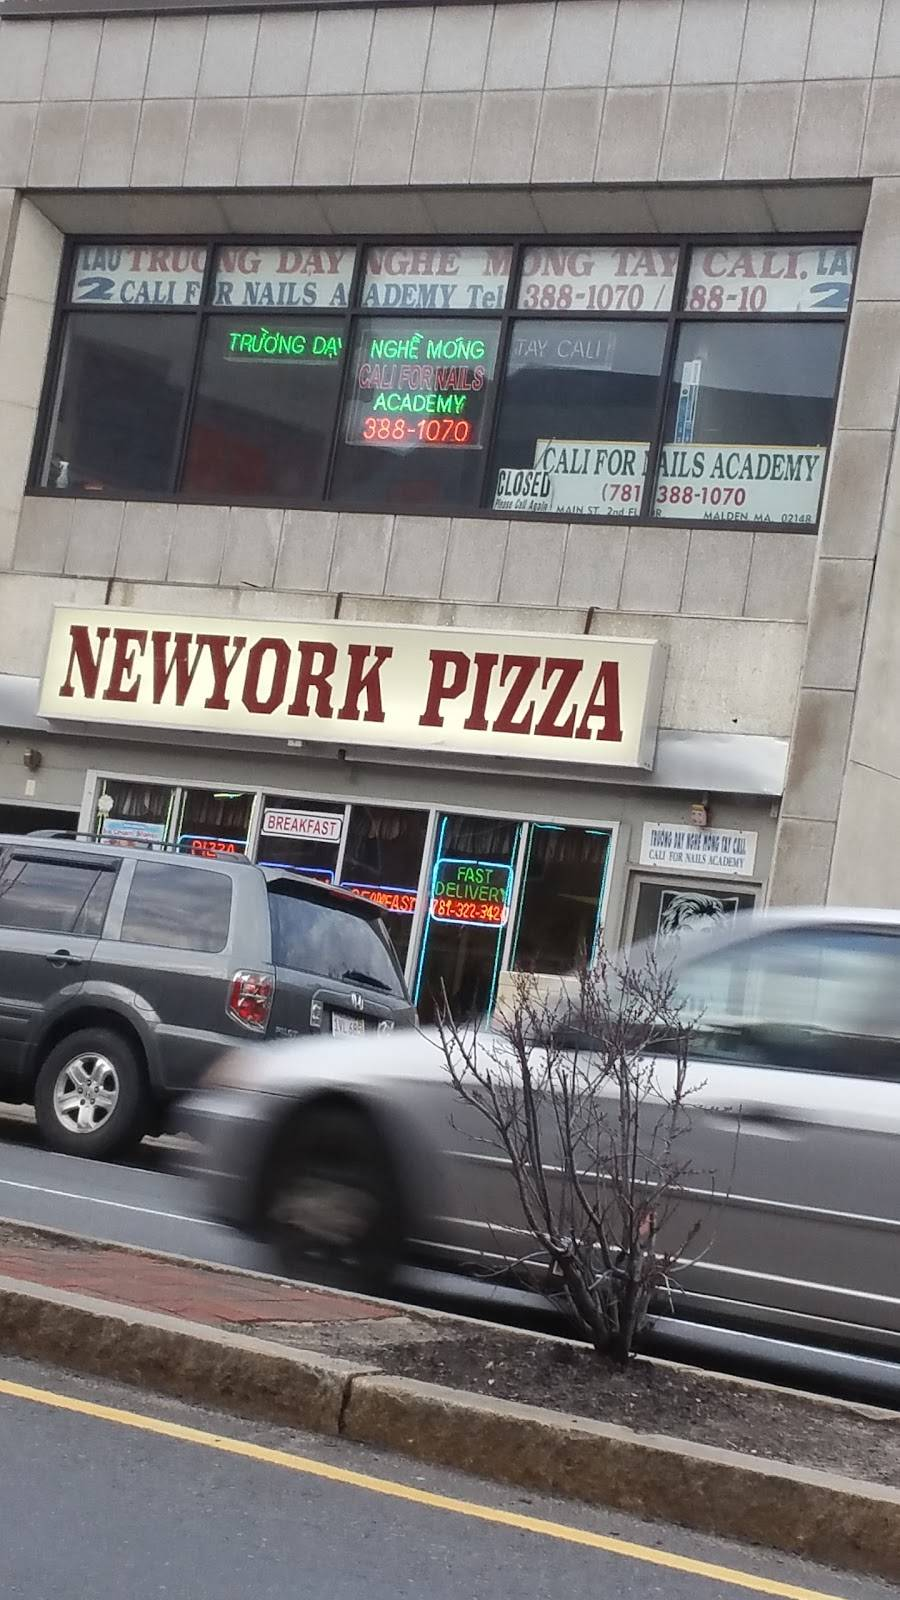 New York Pizza Meal Delivery 421 Main St Malden Ma 02148 Usa